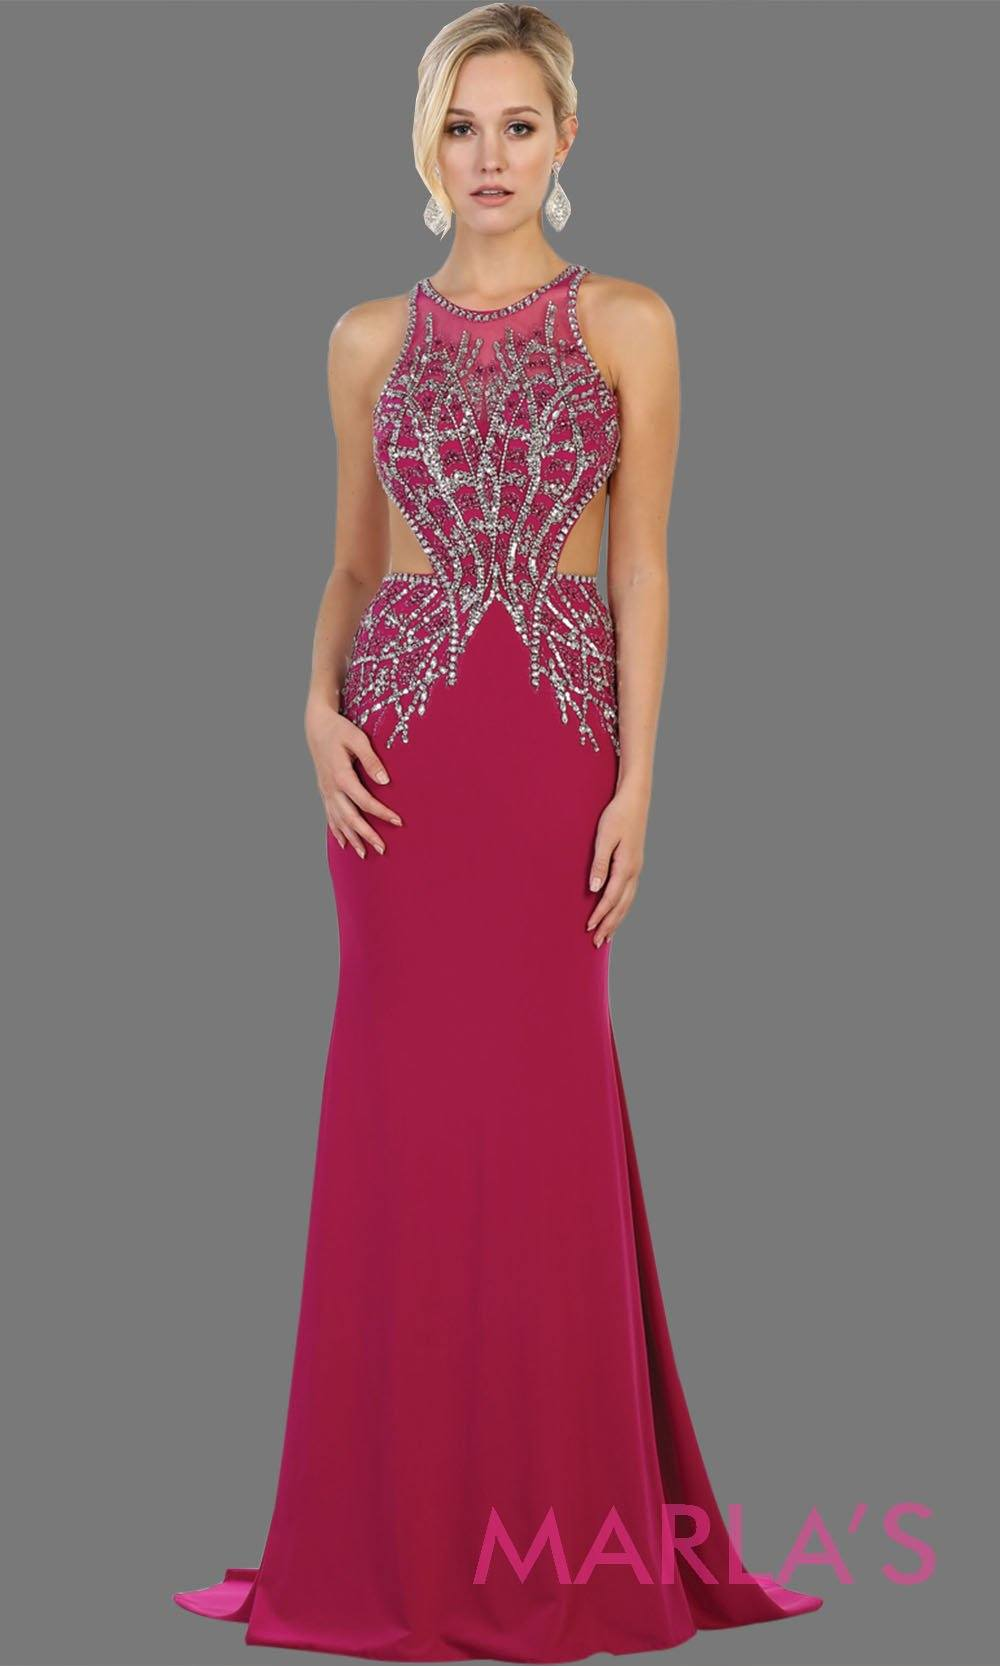 Long fuchsia high neck beaded dress with open back. Perfect for prom, gala, formal wedding guest dress, low back hot pink gown, sleek and sexy dress.